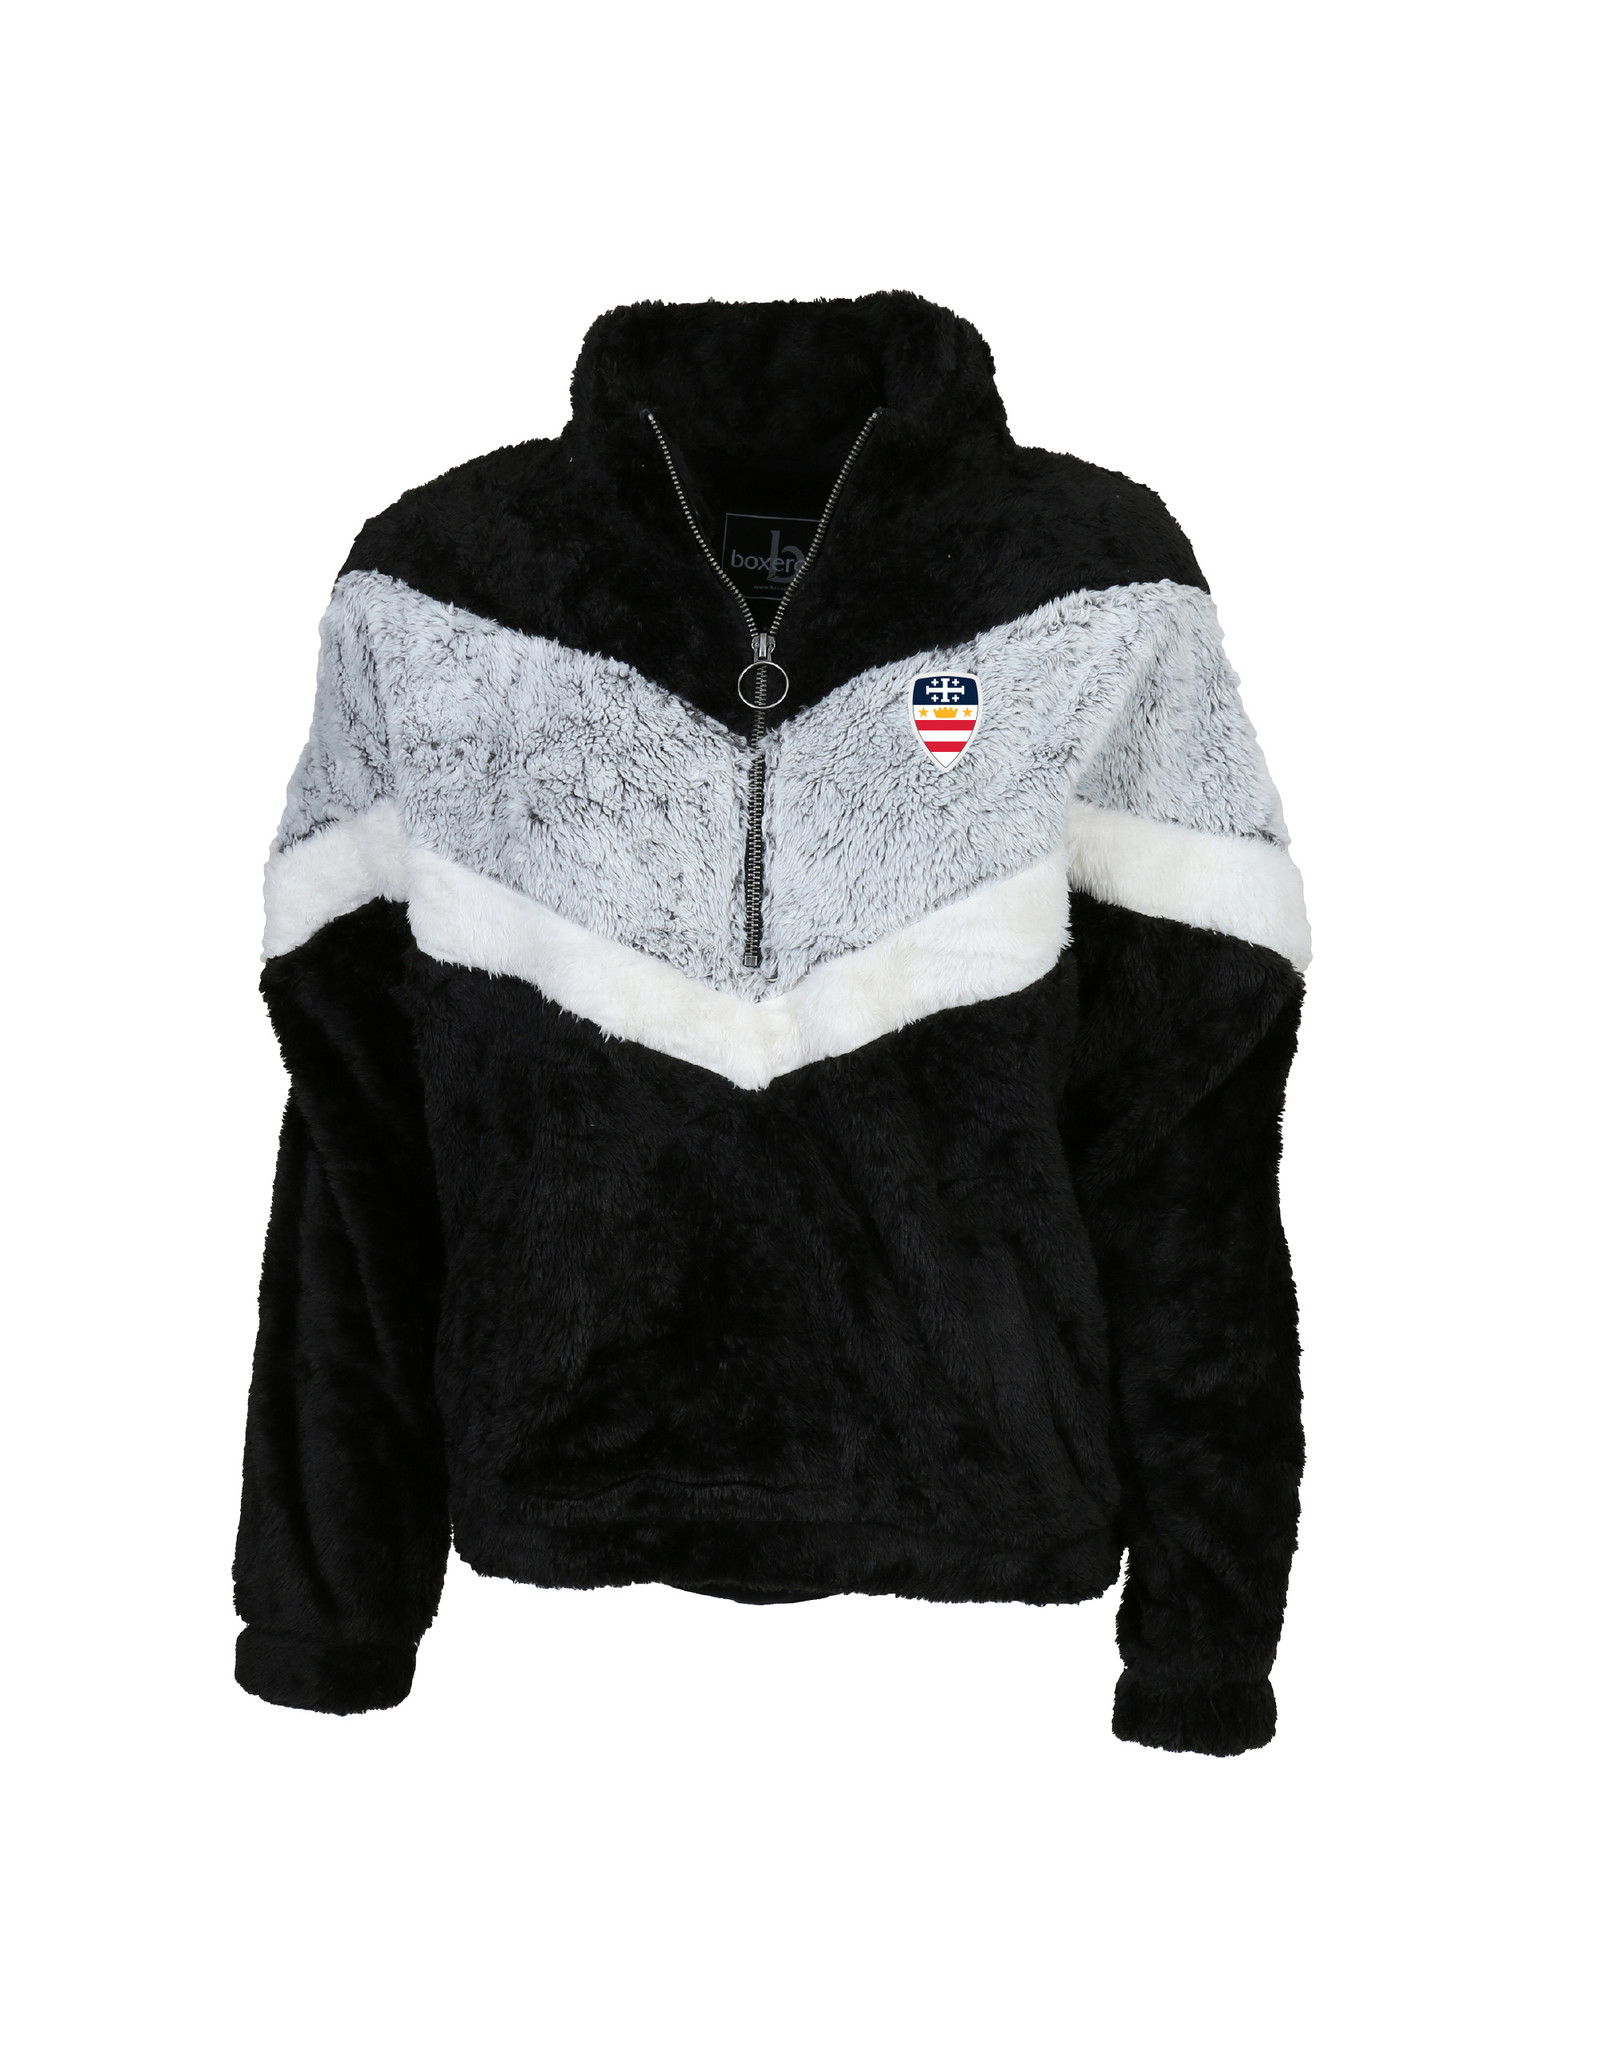 1/4 ZIP YOUTH CHEVRON